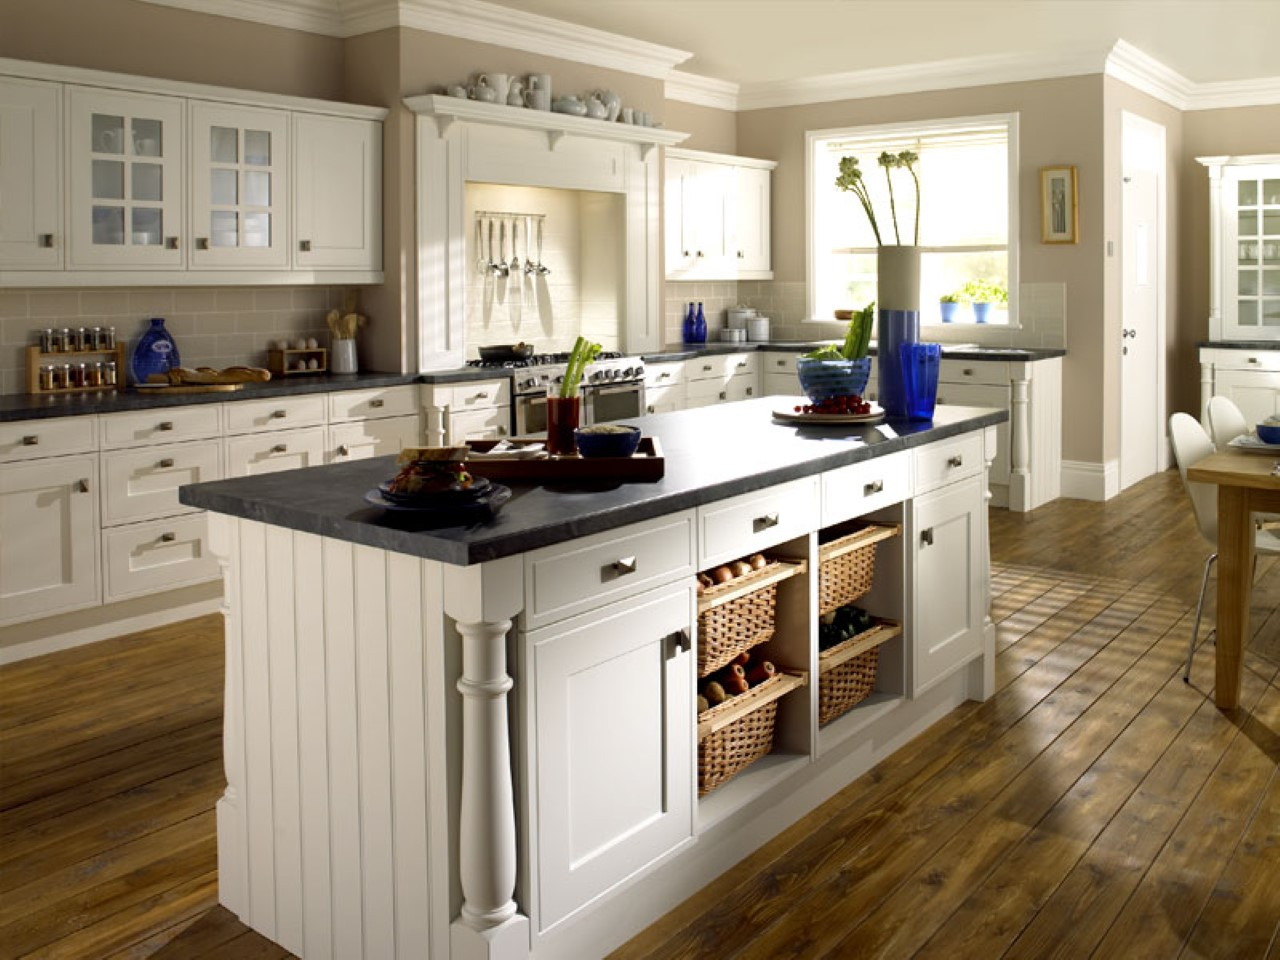 hardwood-floor -design-with-large-island-and-pretty-white-cabinets-in-beautiful-farmhouse- kitchen-plus-roller-window-blind